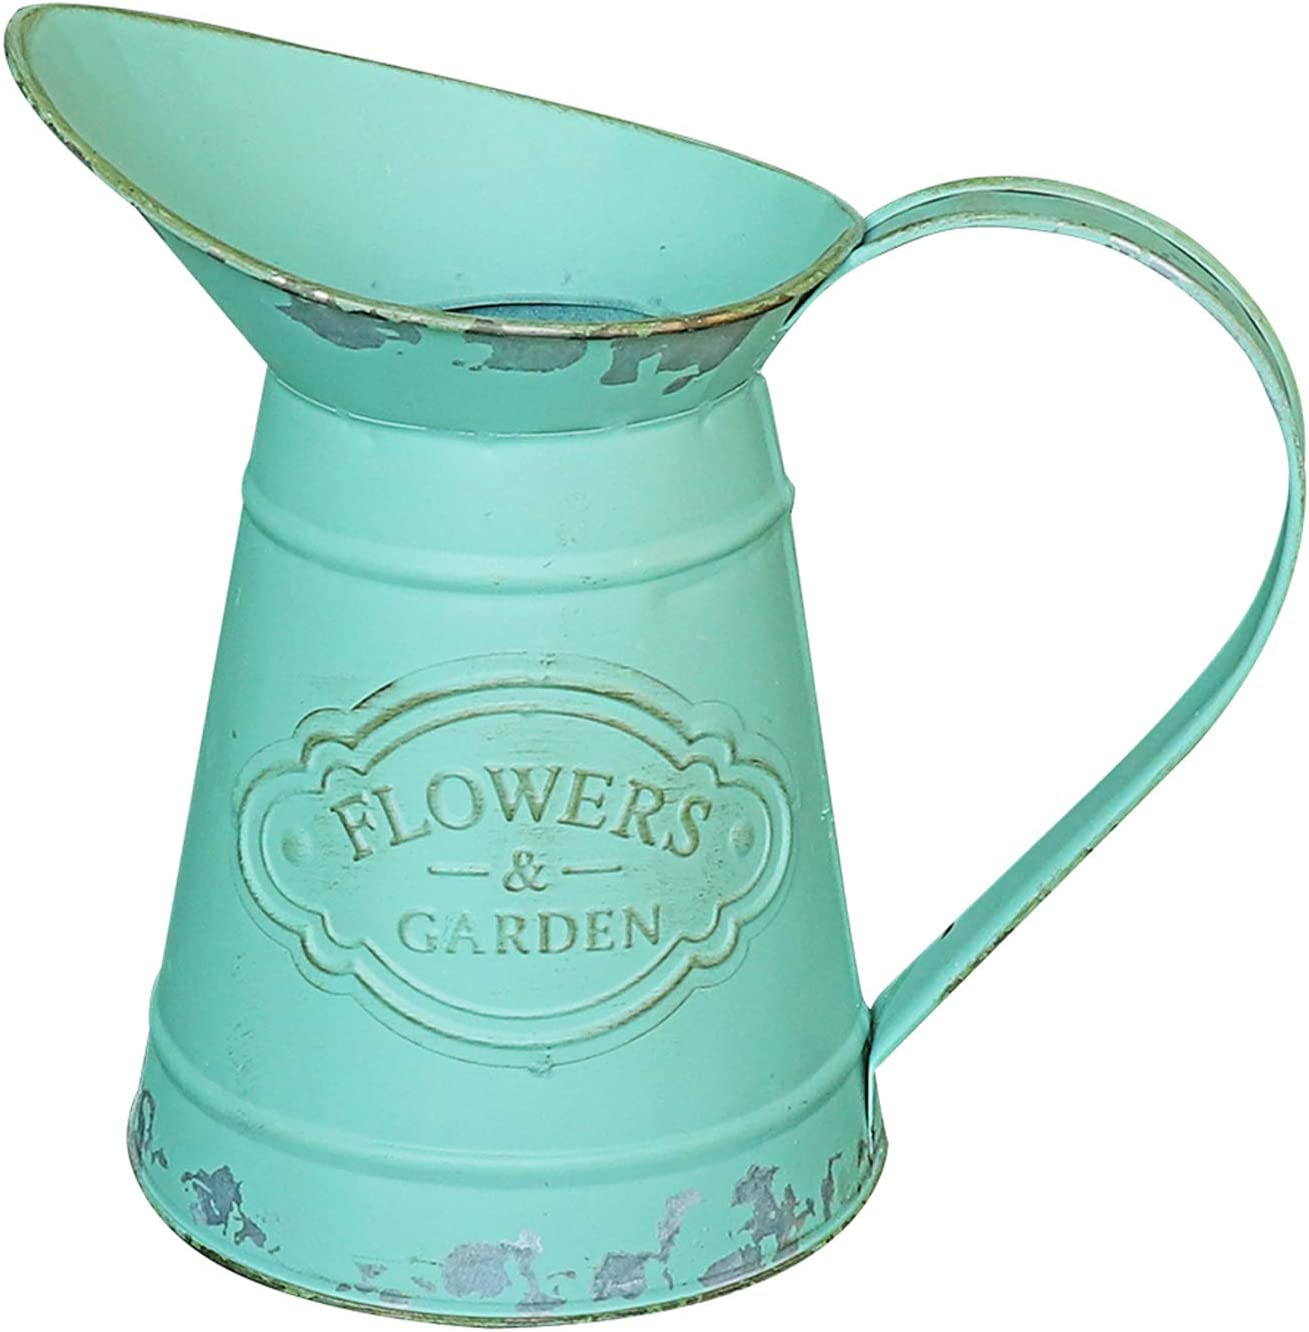 MISIXILE Rustic Style Flower Vase, Shabby Chic Metal Teal Pitcher Vintage Farmhouse Vase Jug for Flowers, Mini Decorative Pitcher Holder for Home Garden Decoration